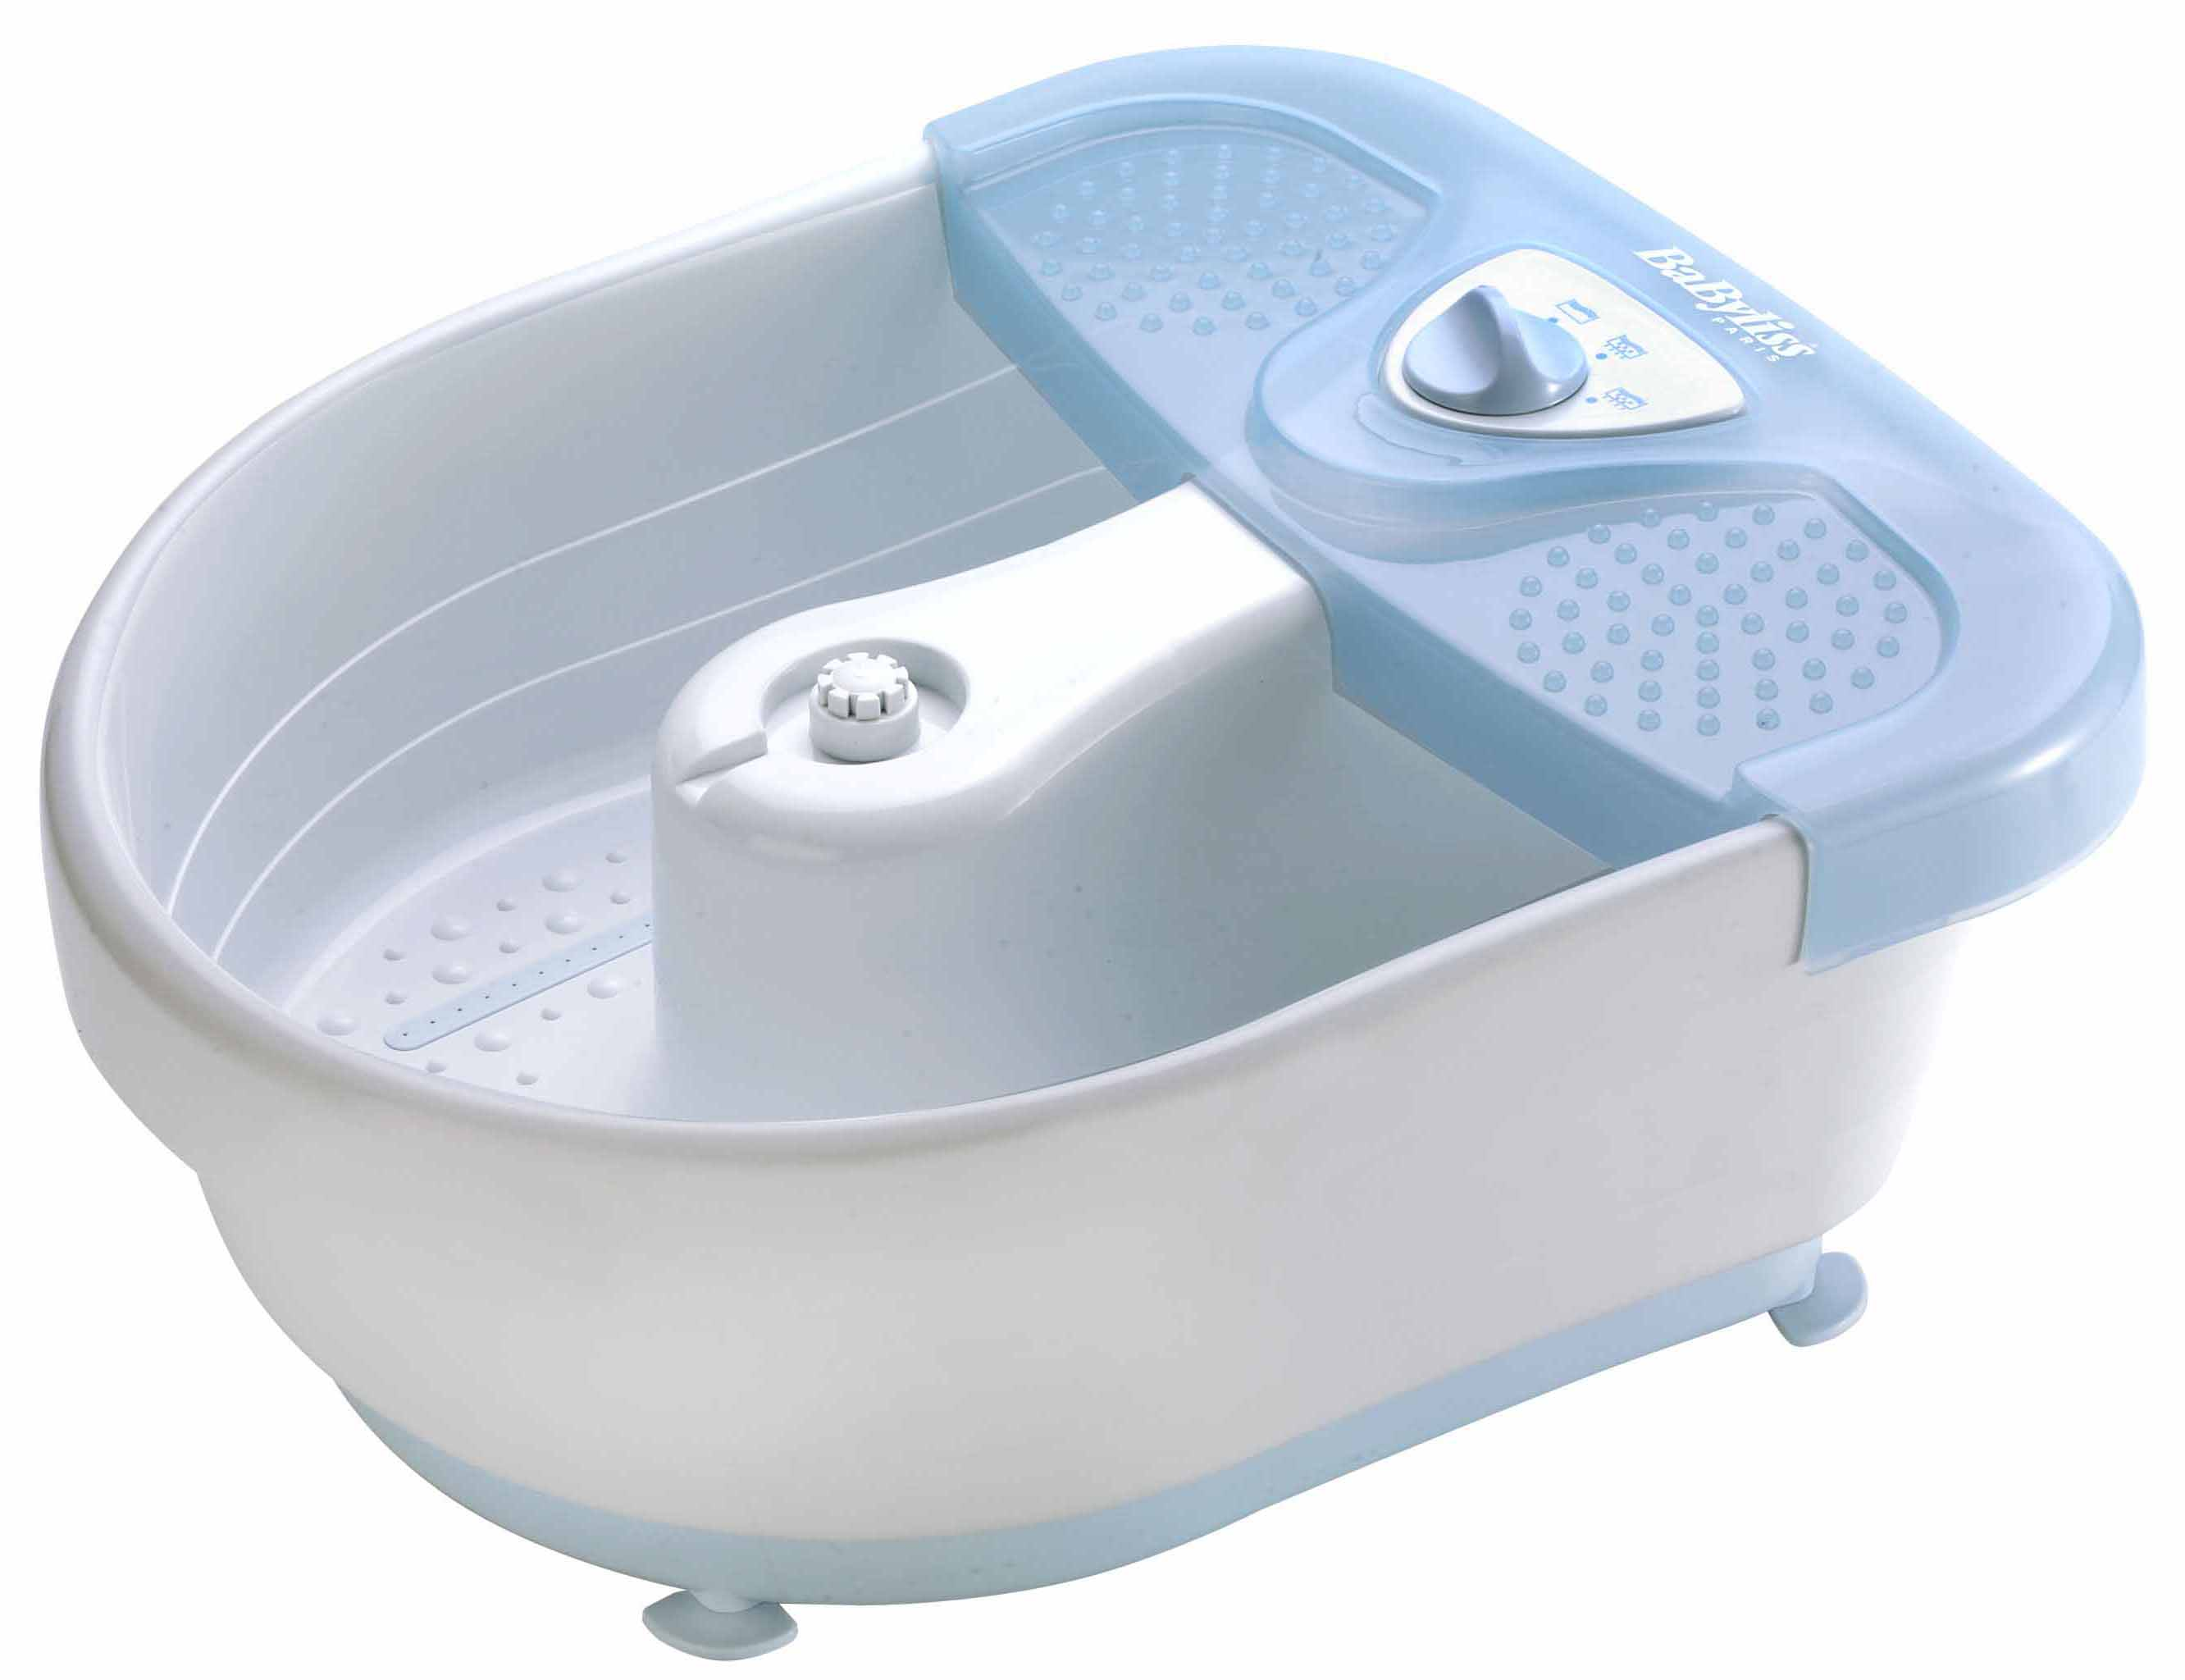 Babyliss Professional Foot Spa Pedicure Hydro Massage Heat Bubbles  #4A6681